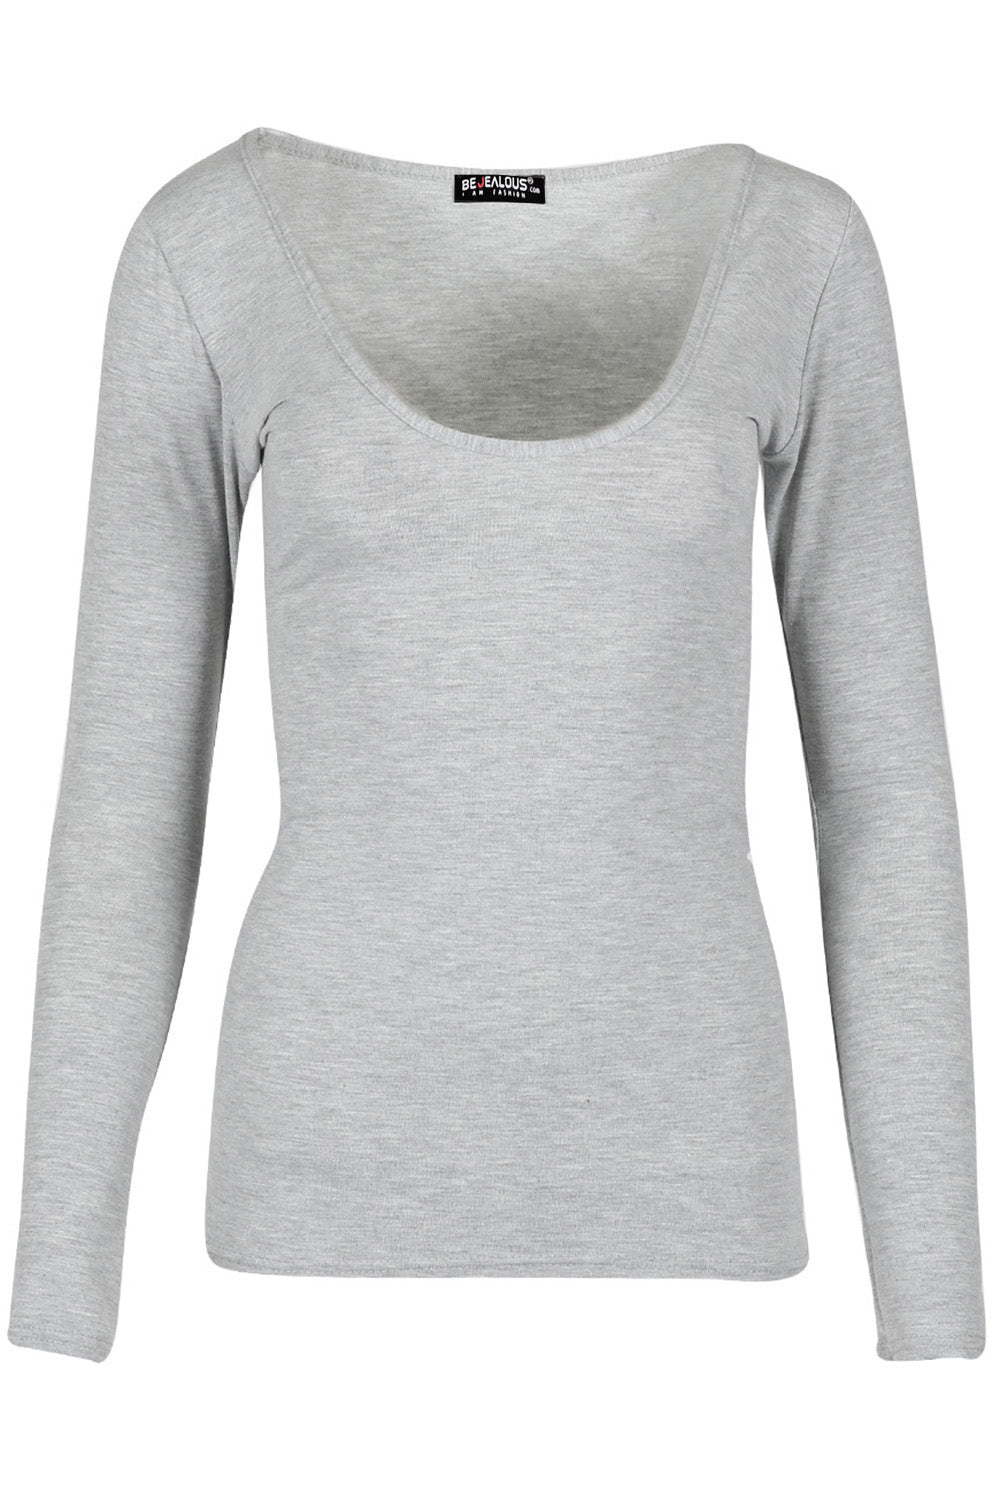 Aria Scoop Neck Long Sleeve Plain T Shirt